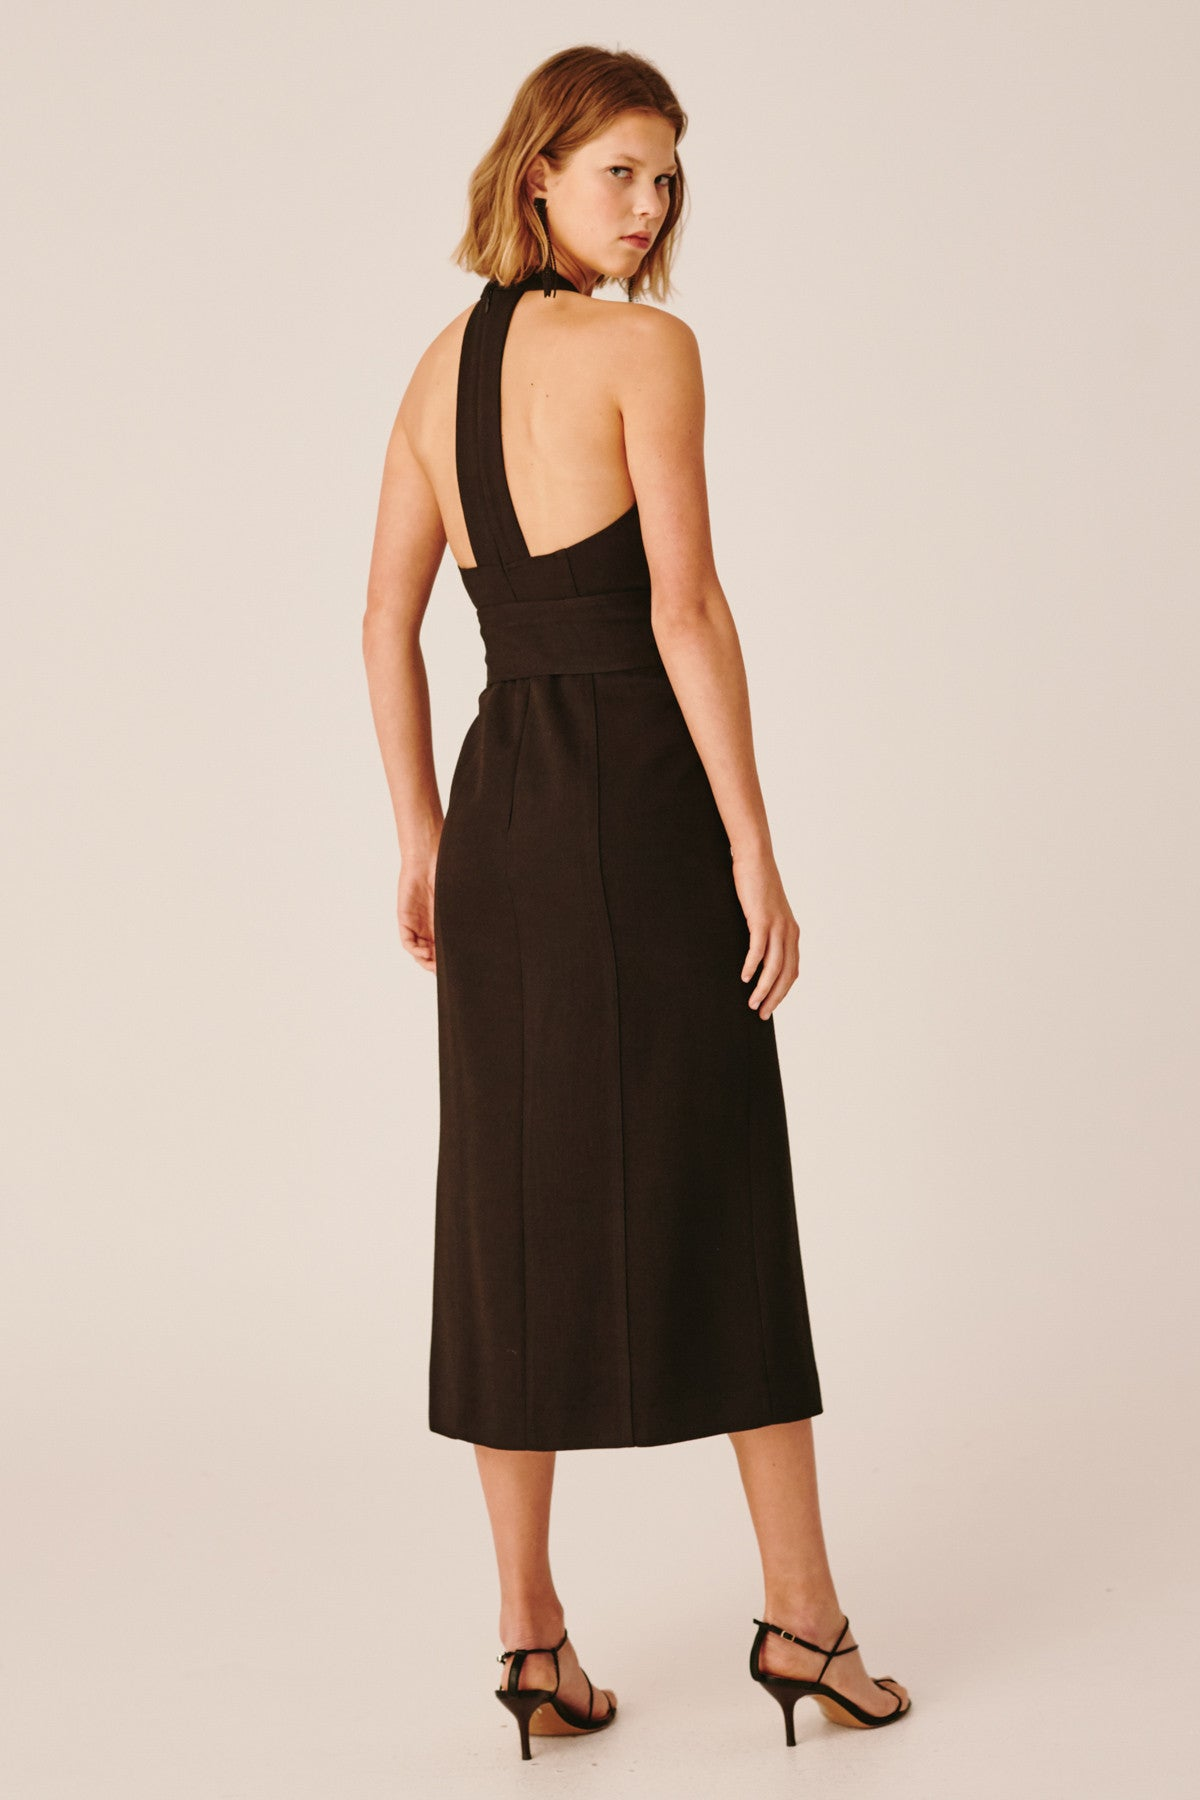 COLLISIONS MIDI DRESS black